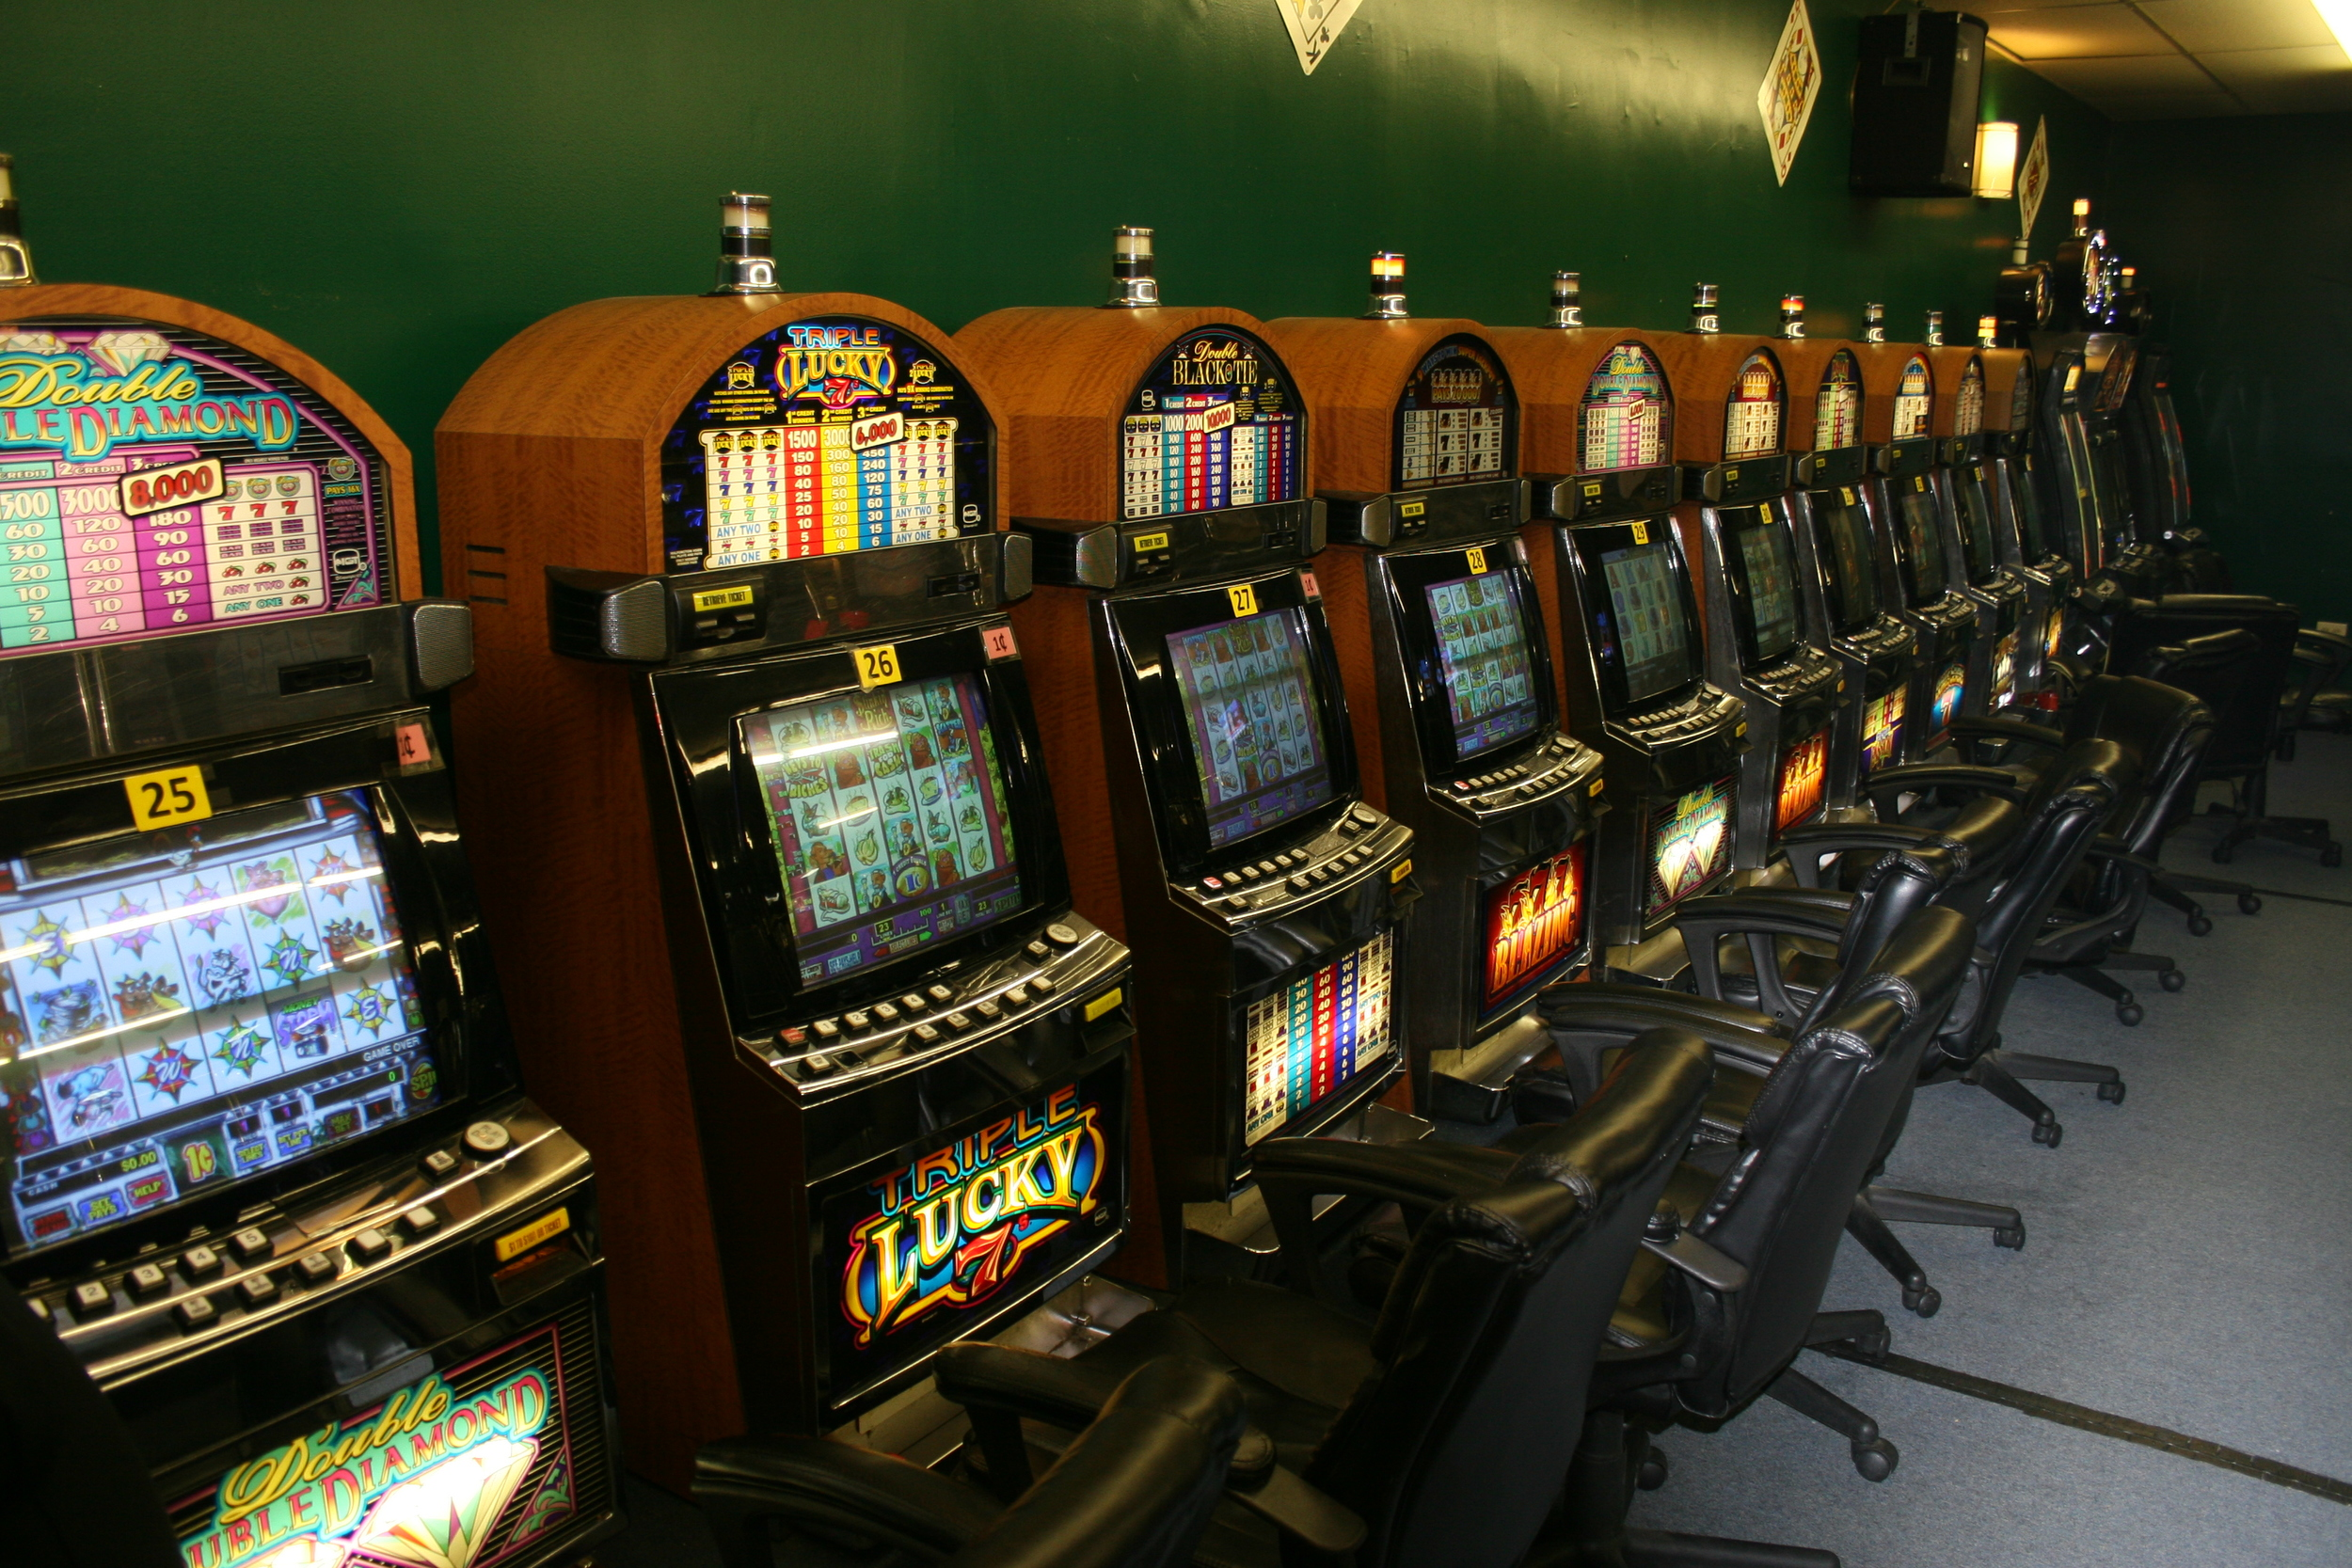 Our Office investigates game rooms, spas and other notorious locations where habitual criminal activity takes place to rid neighborhoods of these nuisances.